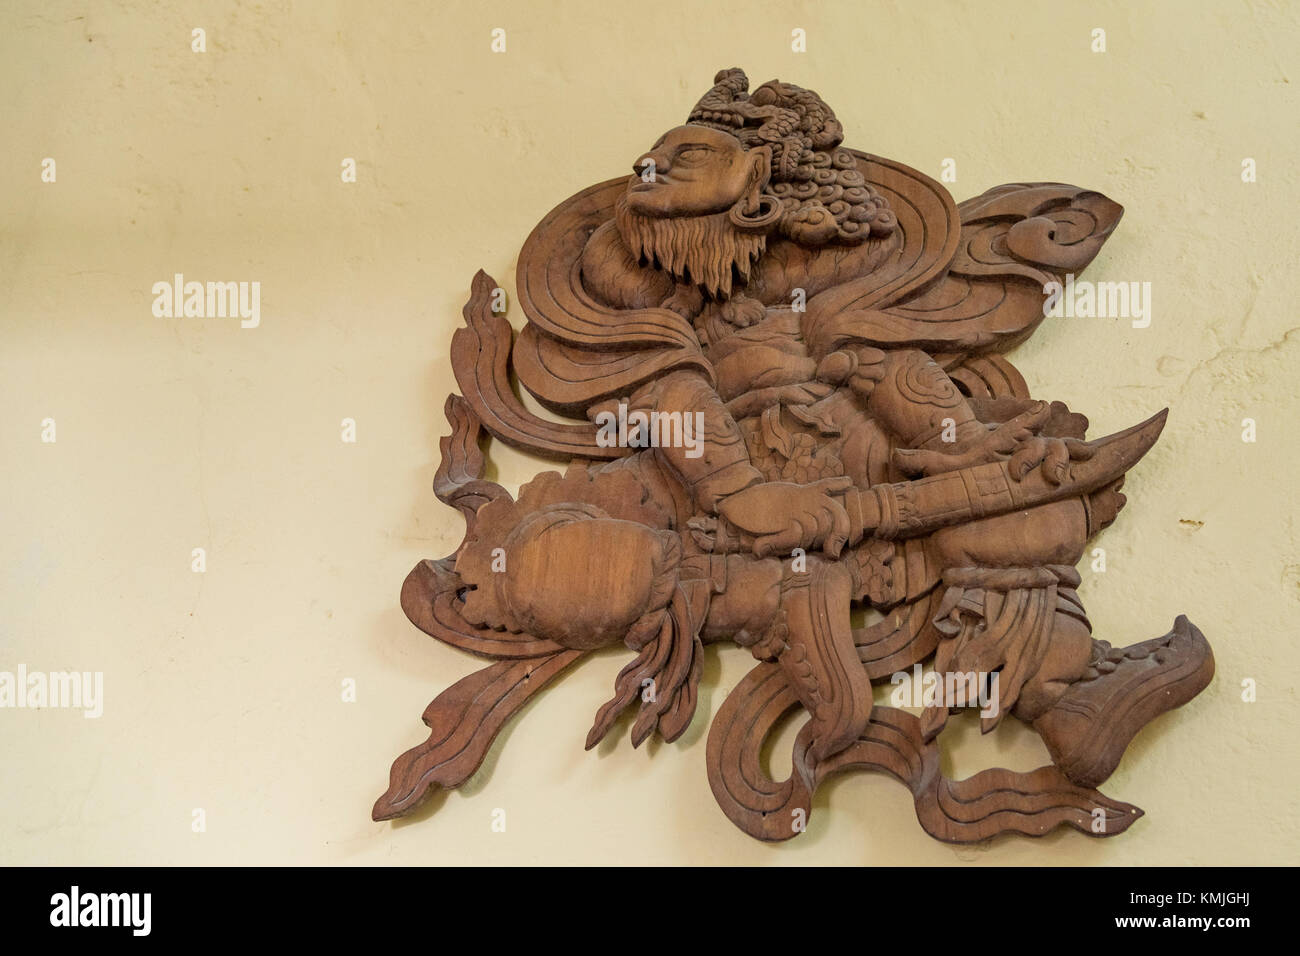 A wooden art piece of Buddhist religion. - Stock Image